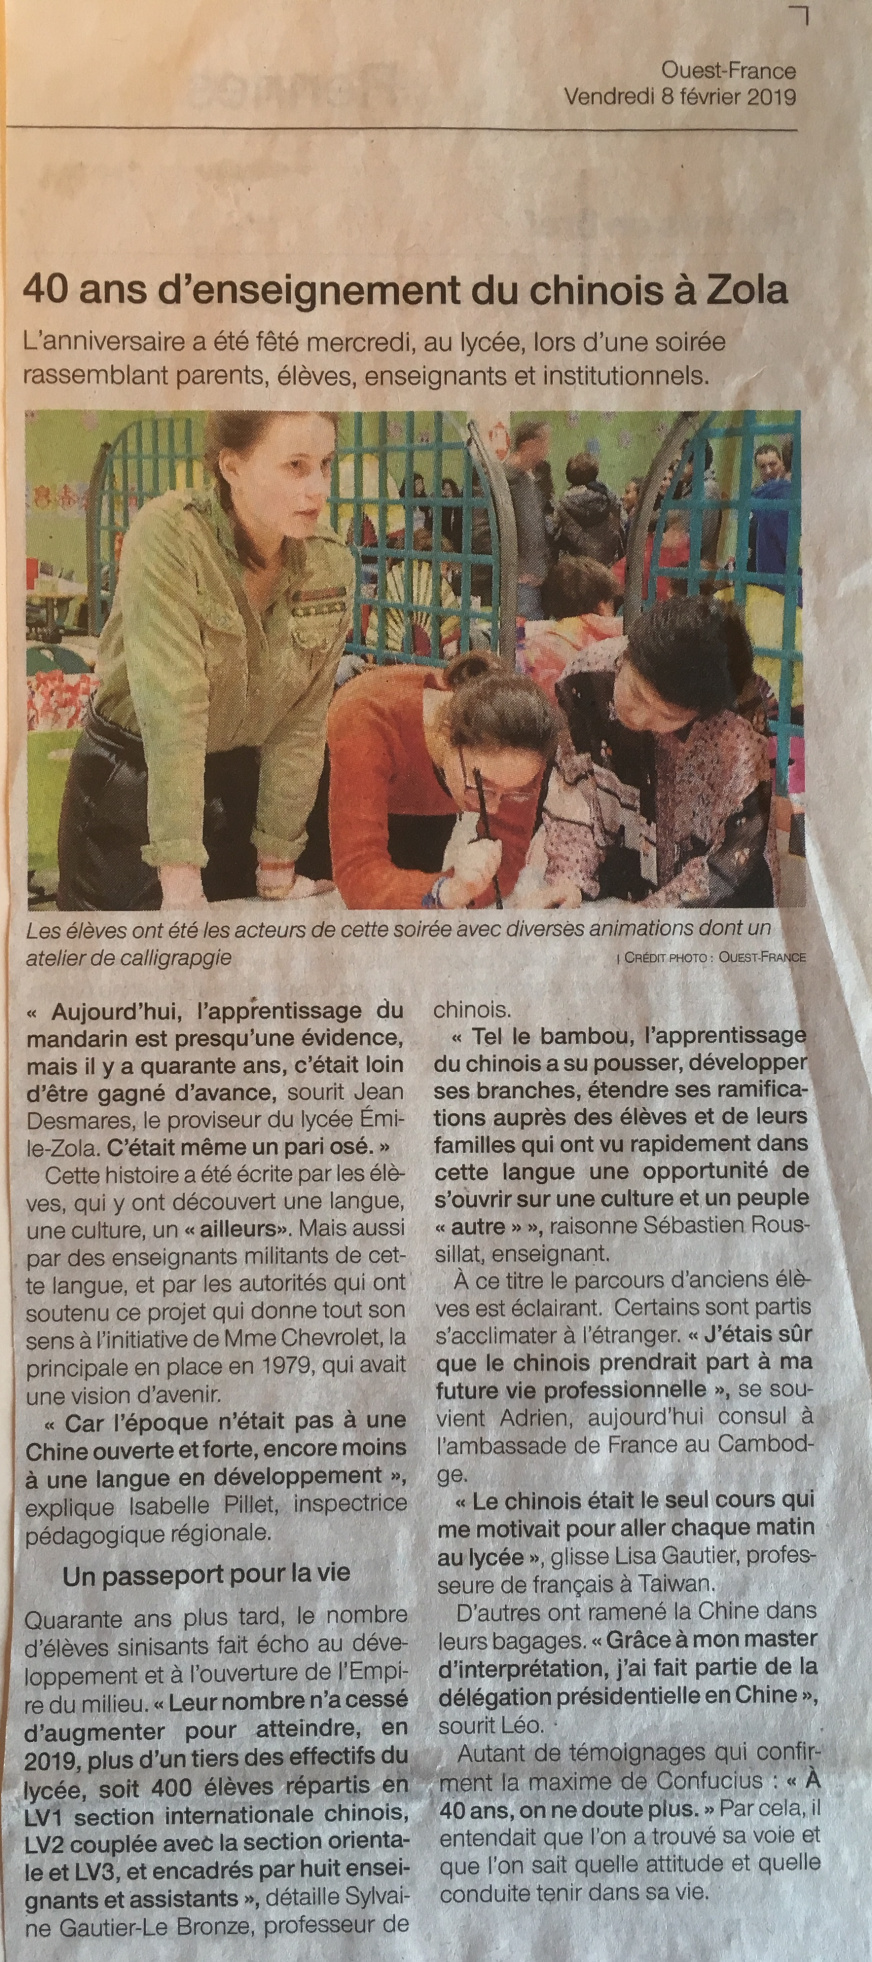 ARTICLE Ouest-France - JPEG - 2.6 Mo